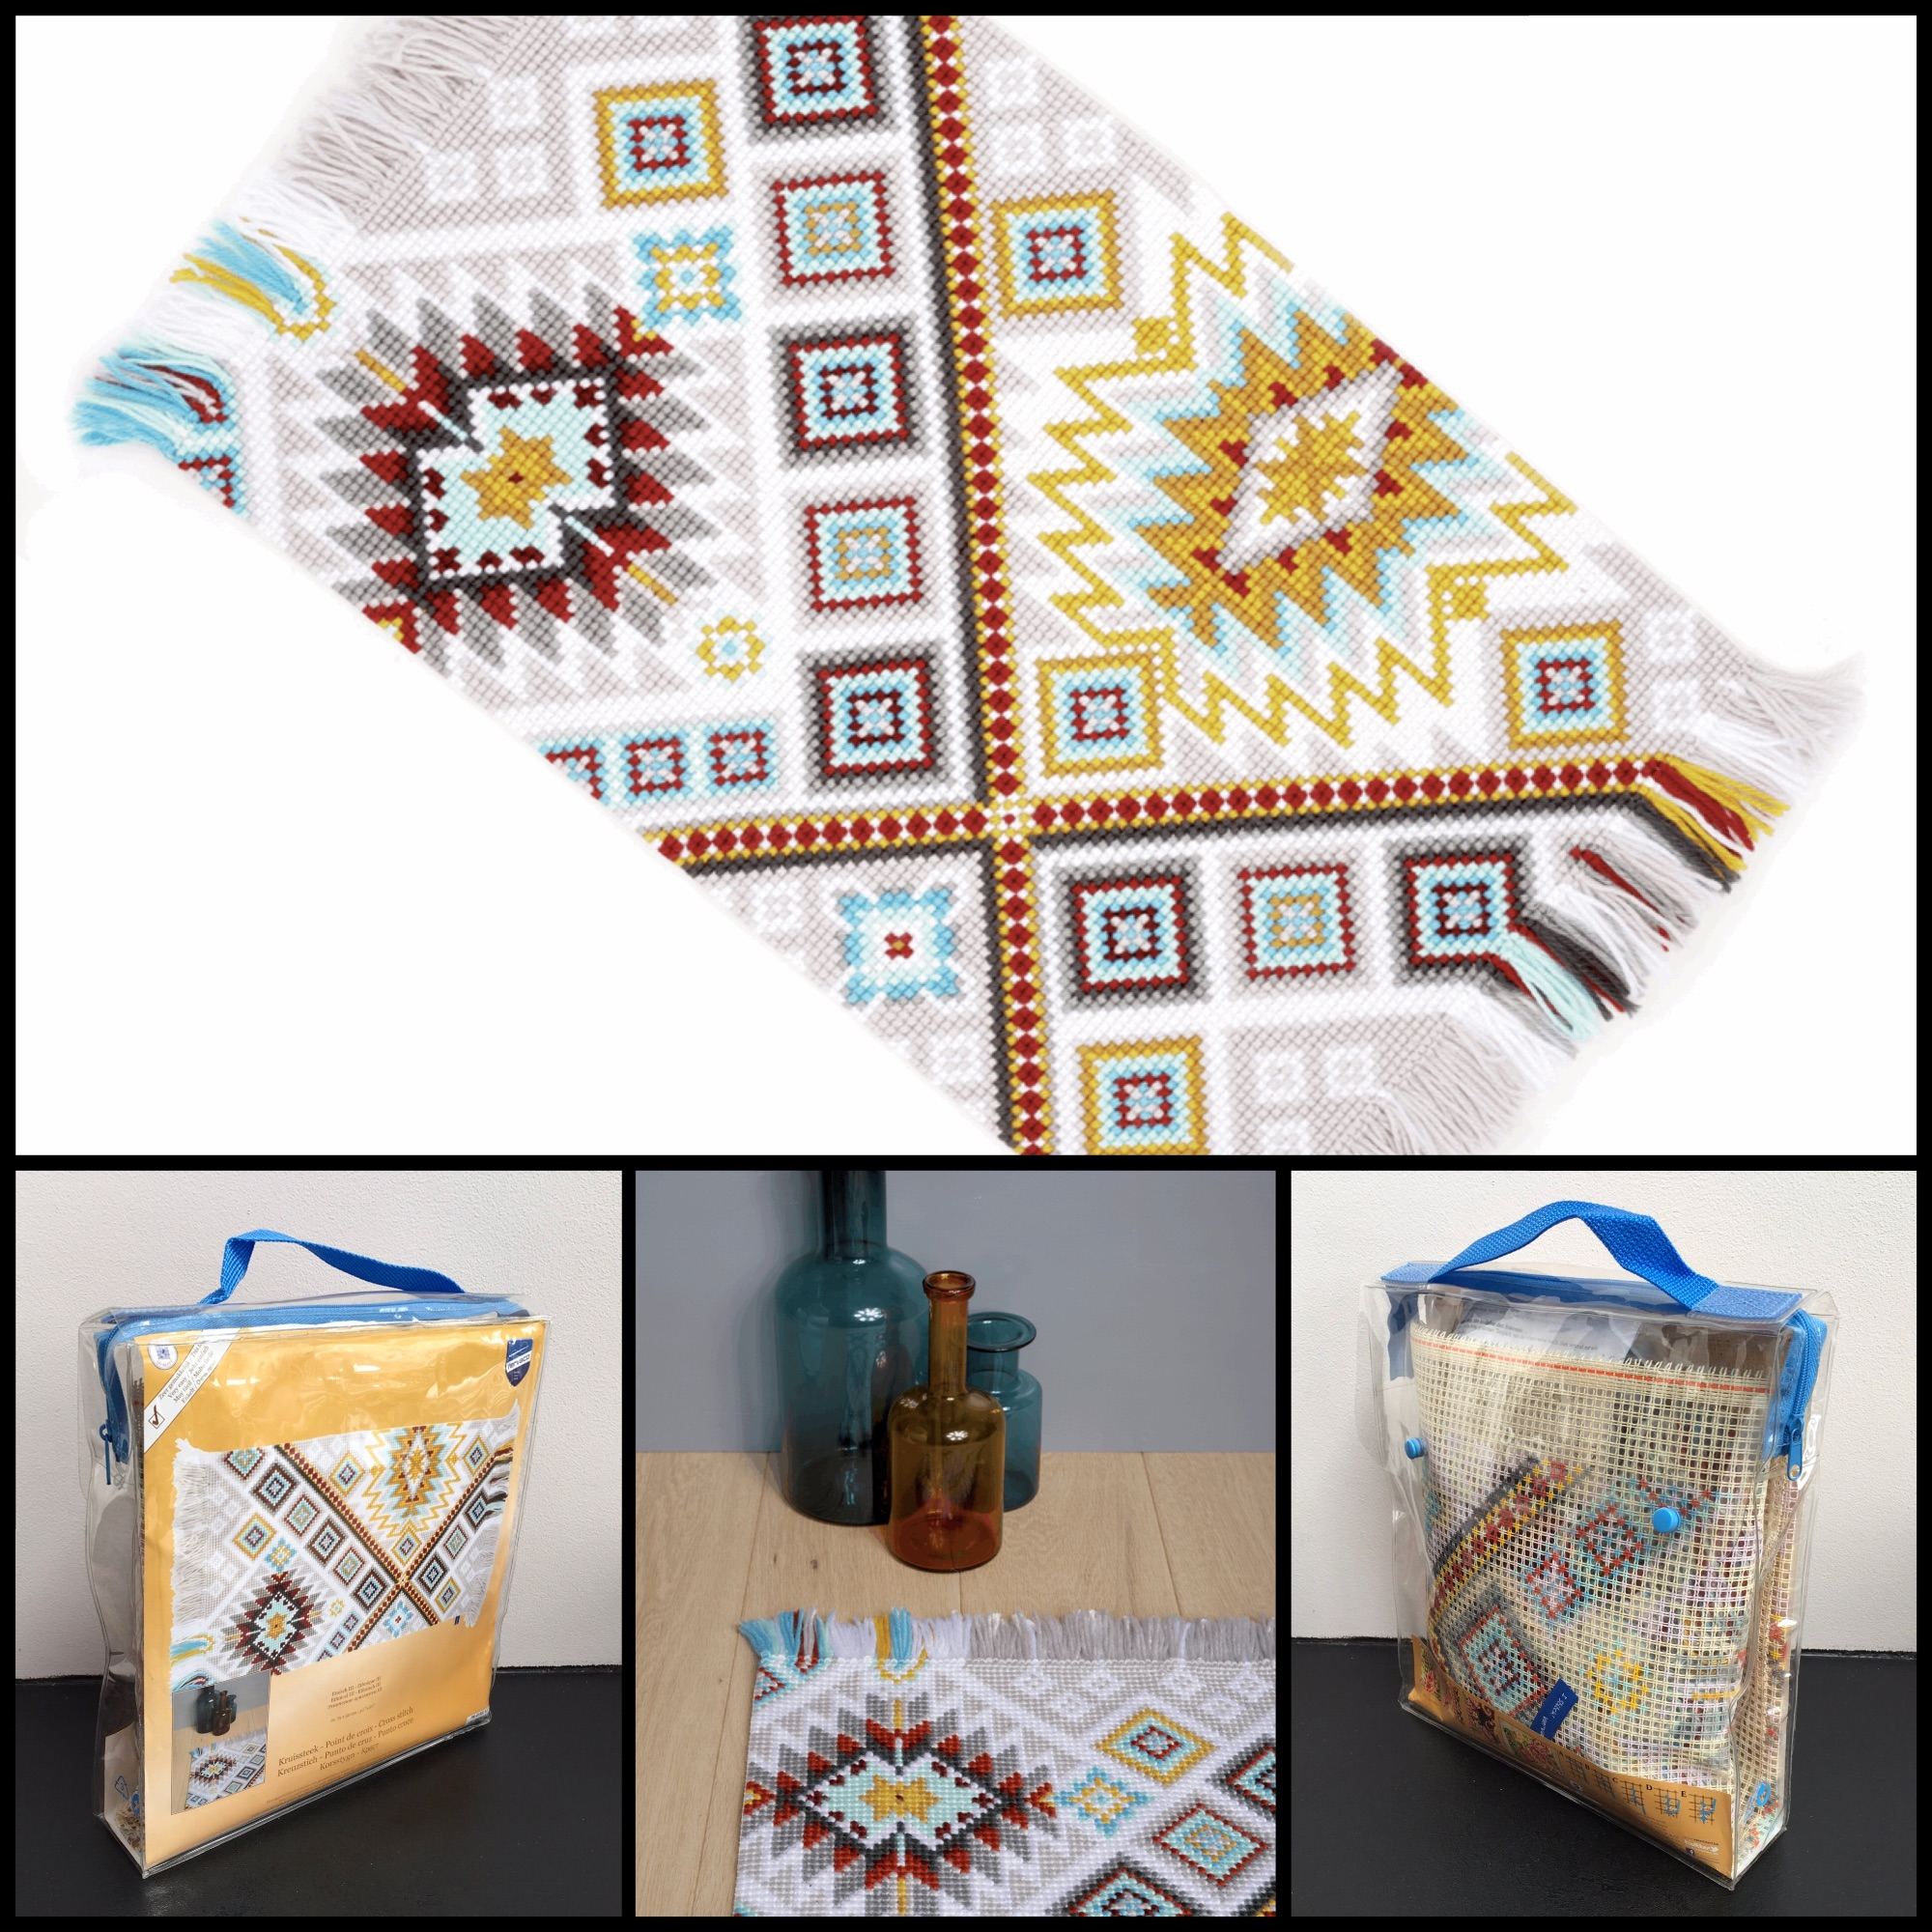 Vervaco Rug Ethnical cross stitch tapestry kit